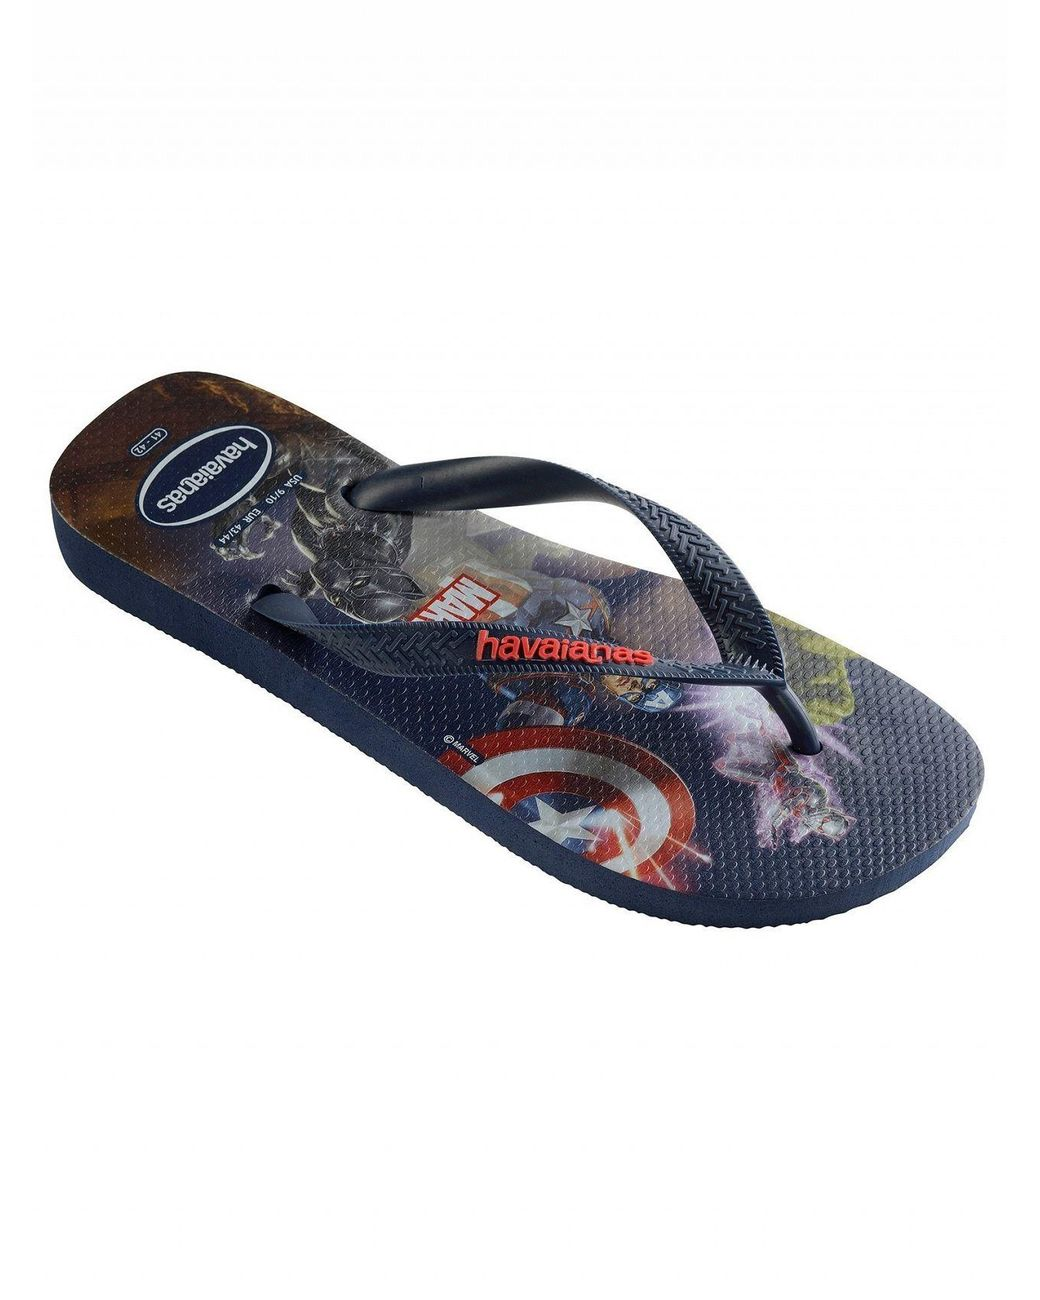 af8a5002b467 Long-Touch to Zoom. Long-Touch to Zoom. 1  2  3  4. Havaianas - Navy Blue  Top Marvel Flip Flops ...